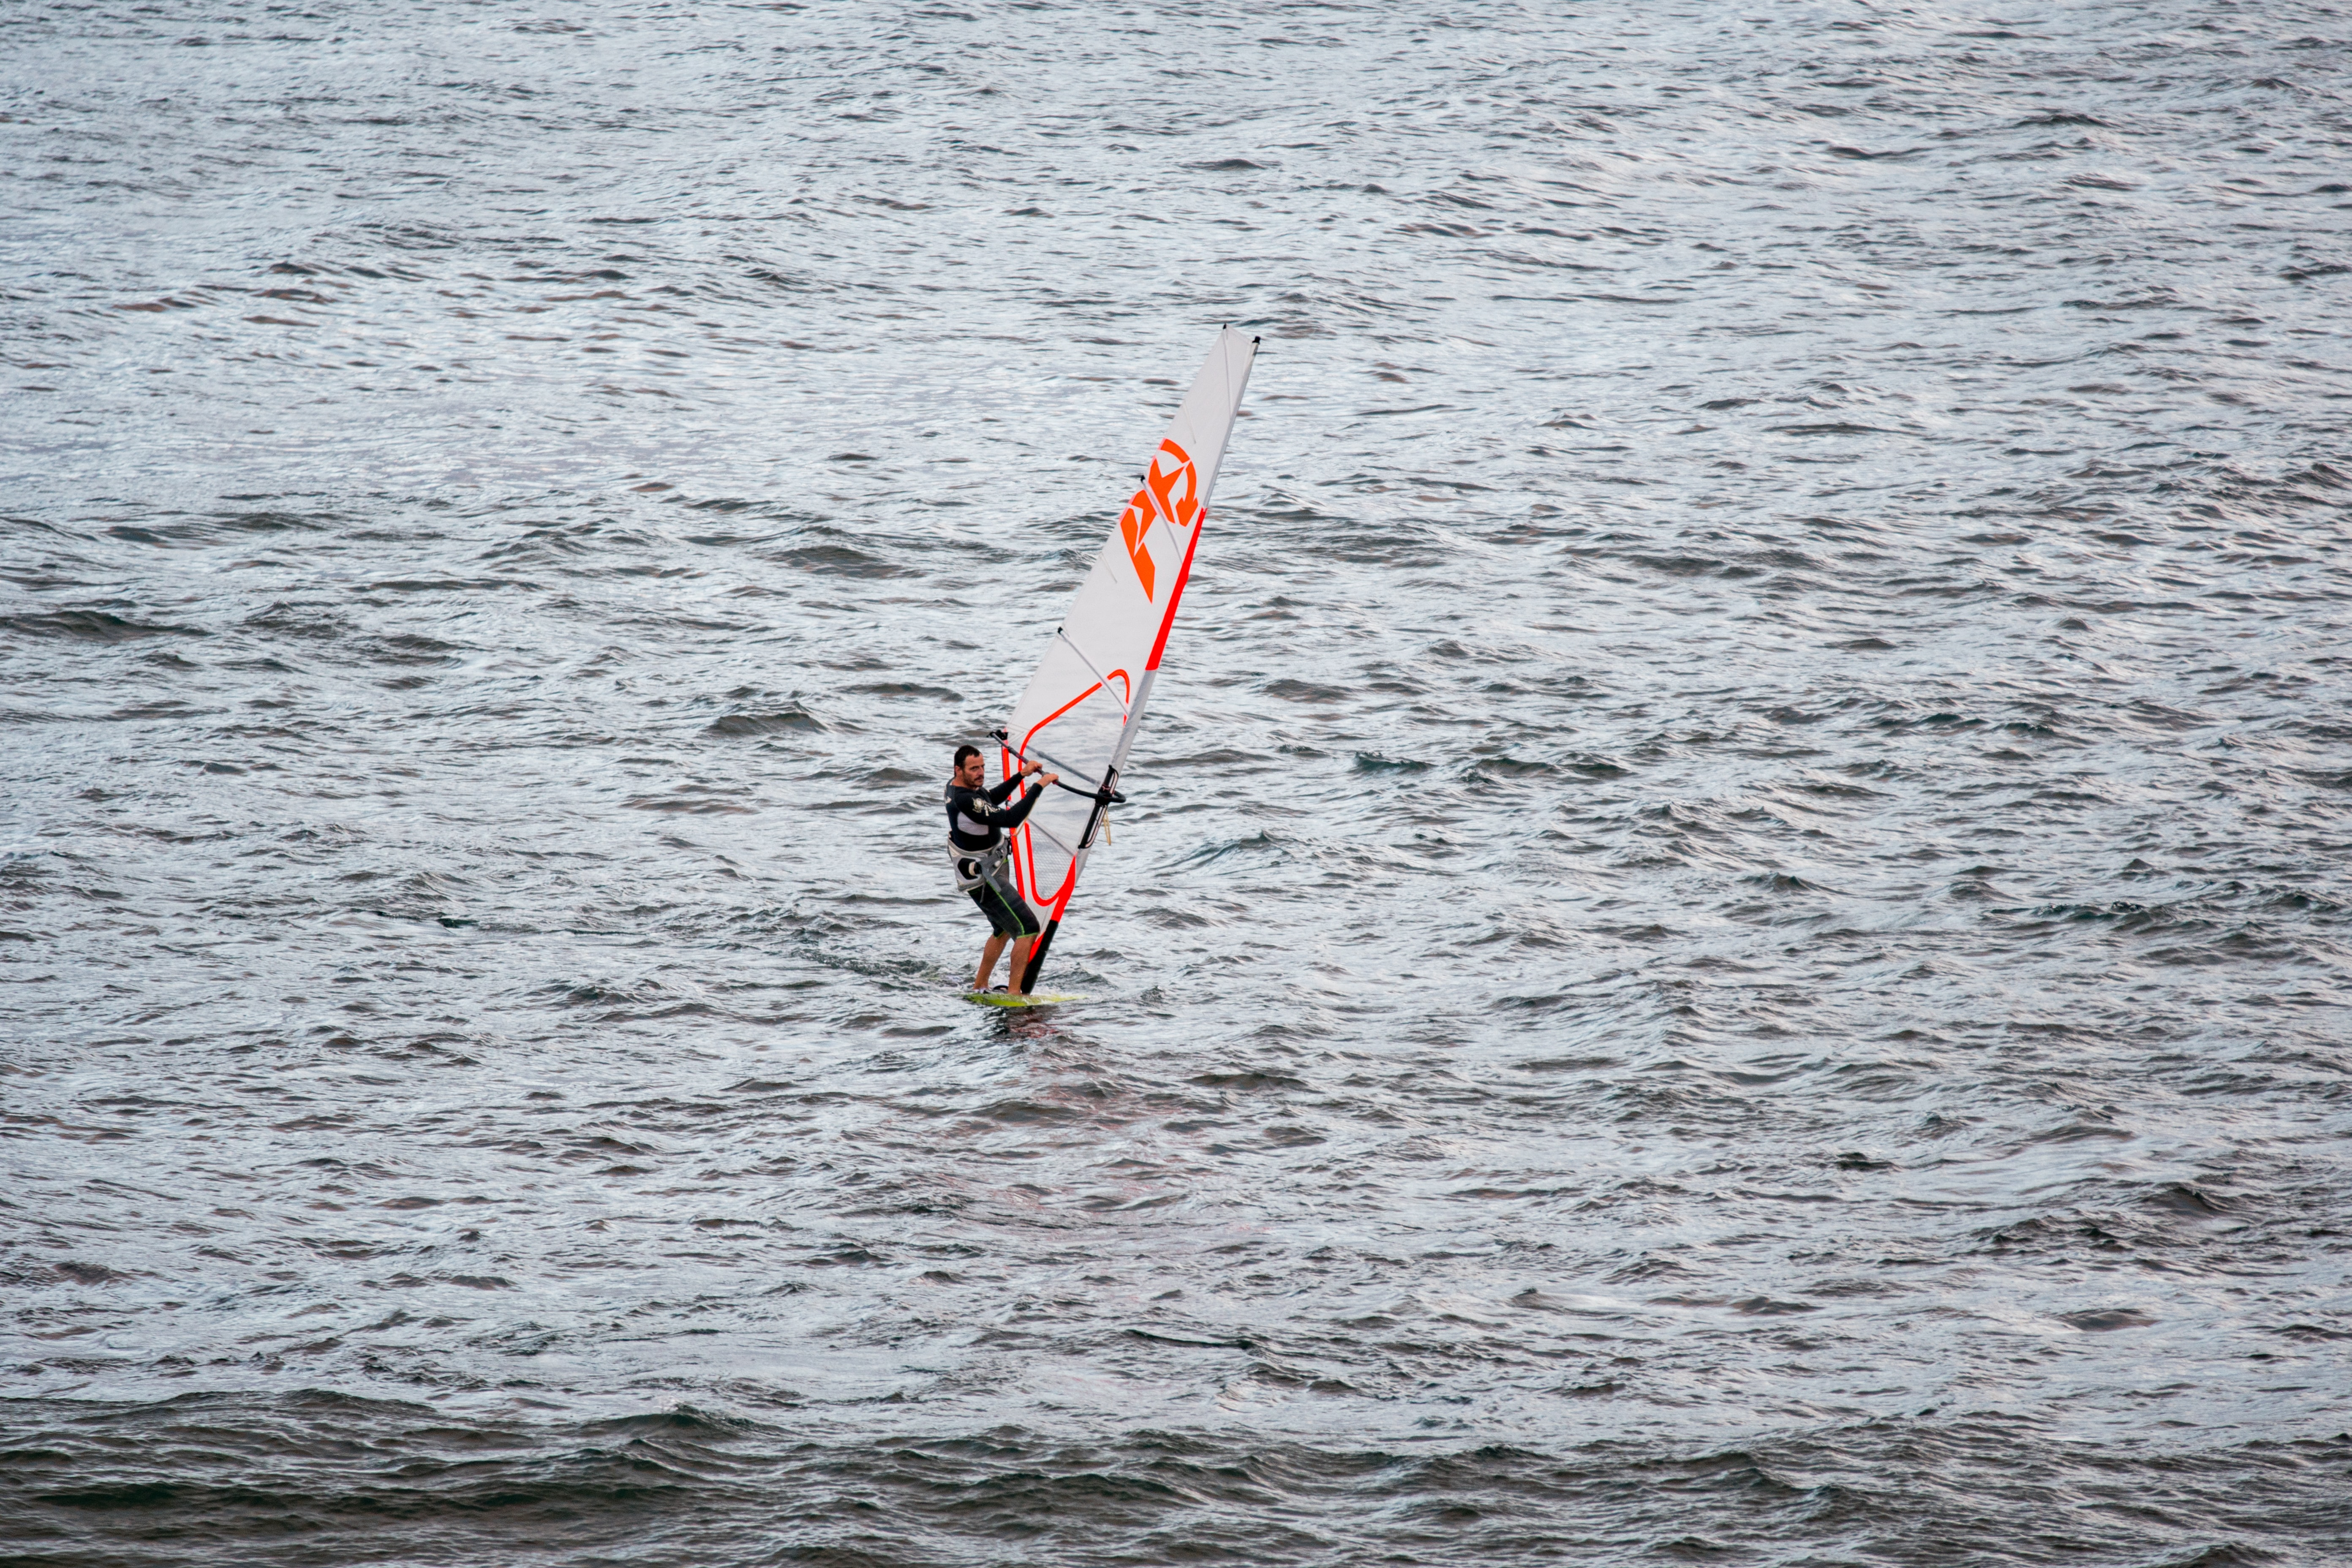 person riding windsurfing on body of water